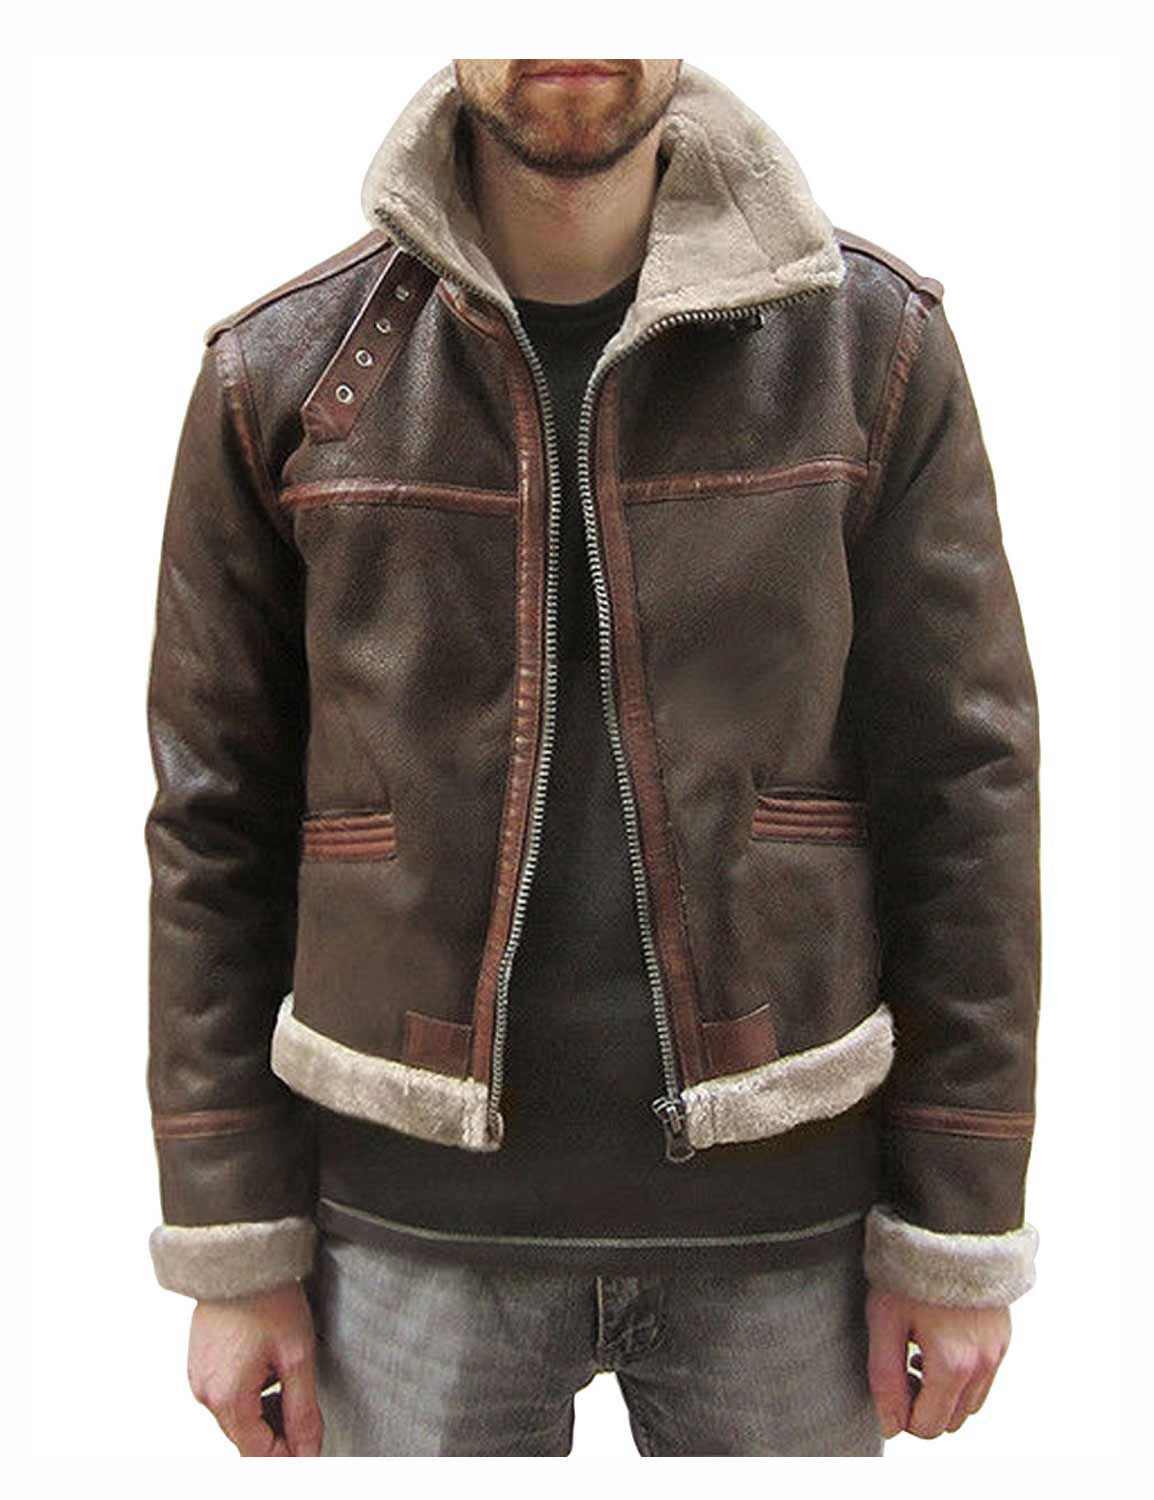 Leon Kennedy jacket is surely winter type jacket. Resident Evil 4 outfit is  awesome and relevant apparel from fourth sequence of video game. 68cadc2ea26b